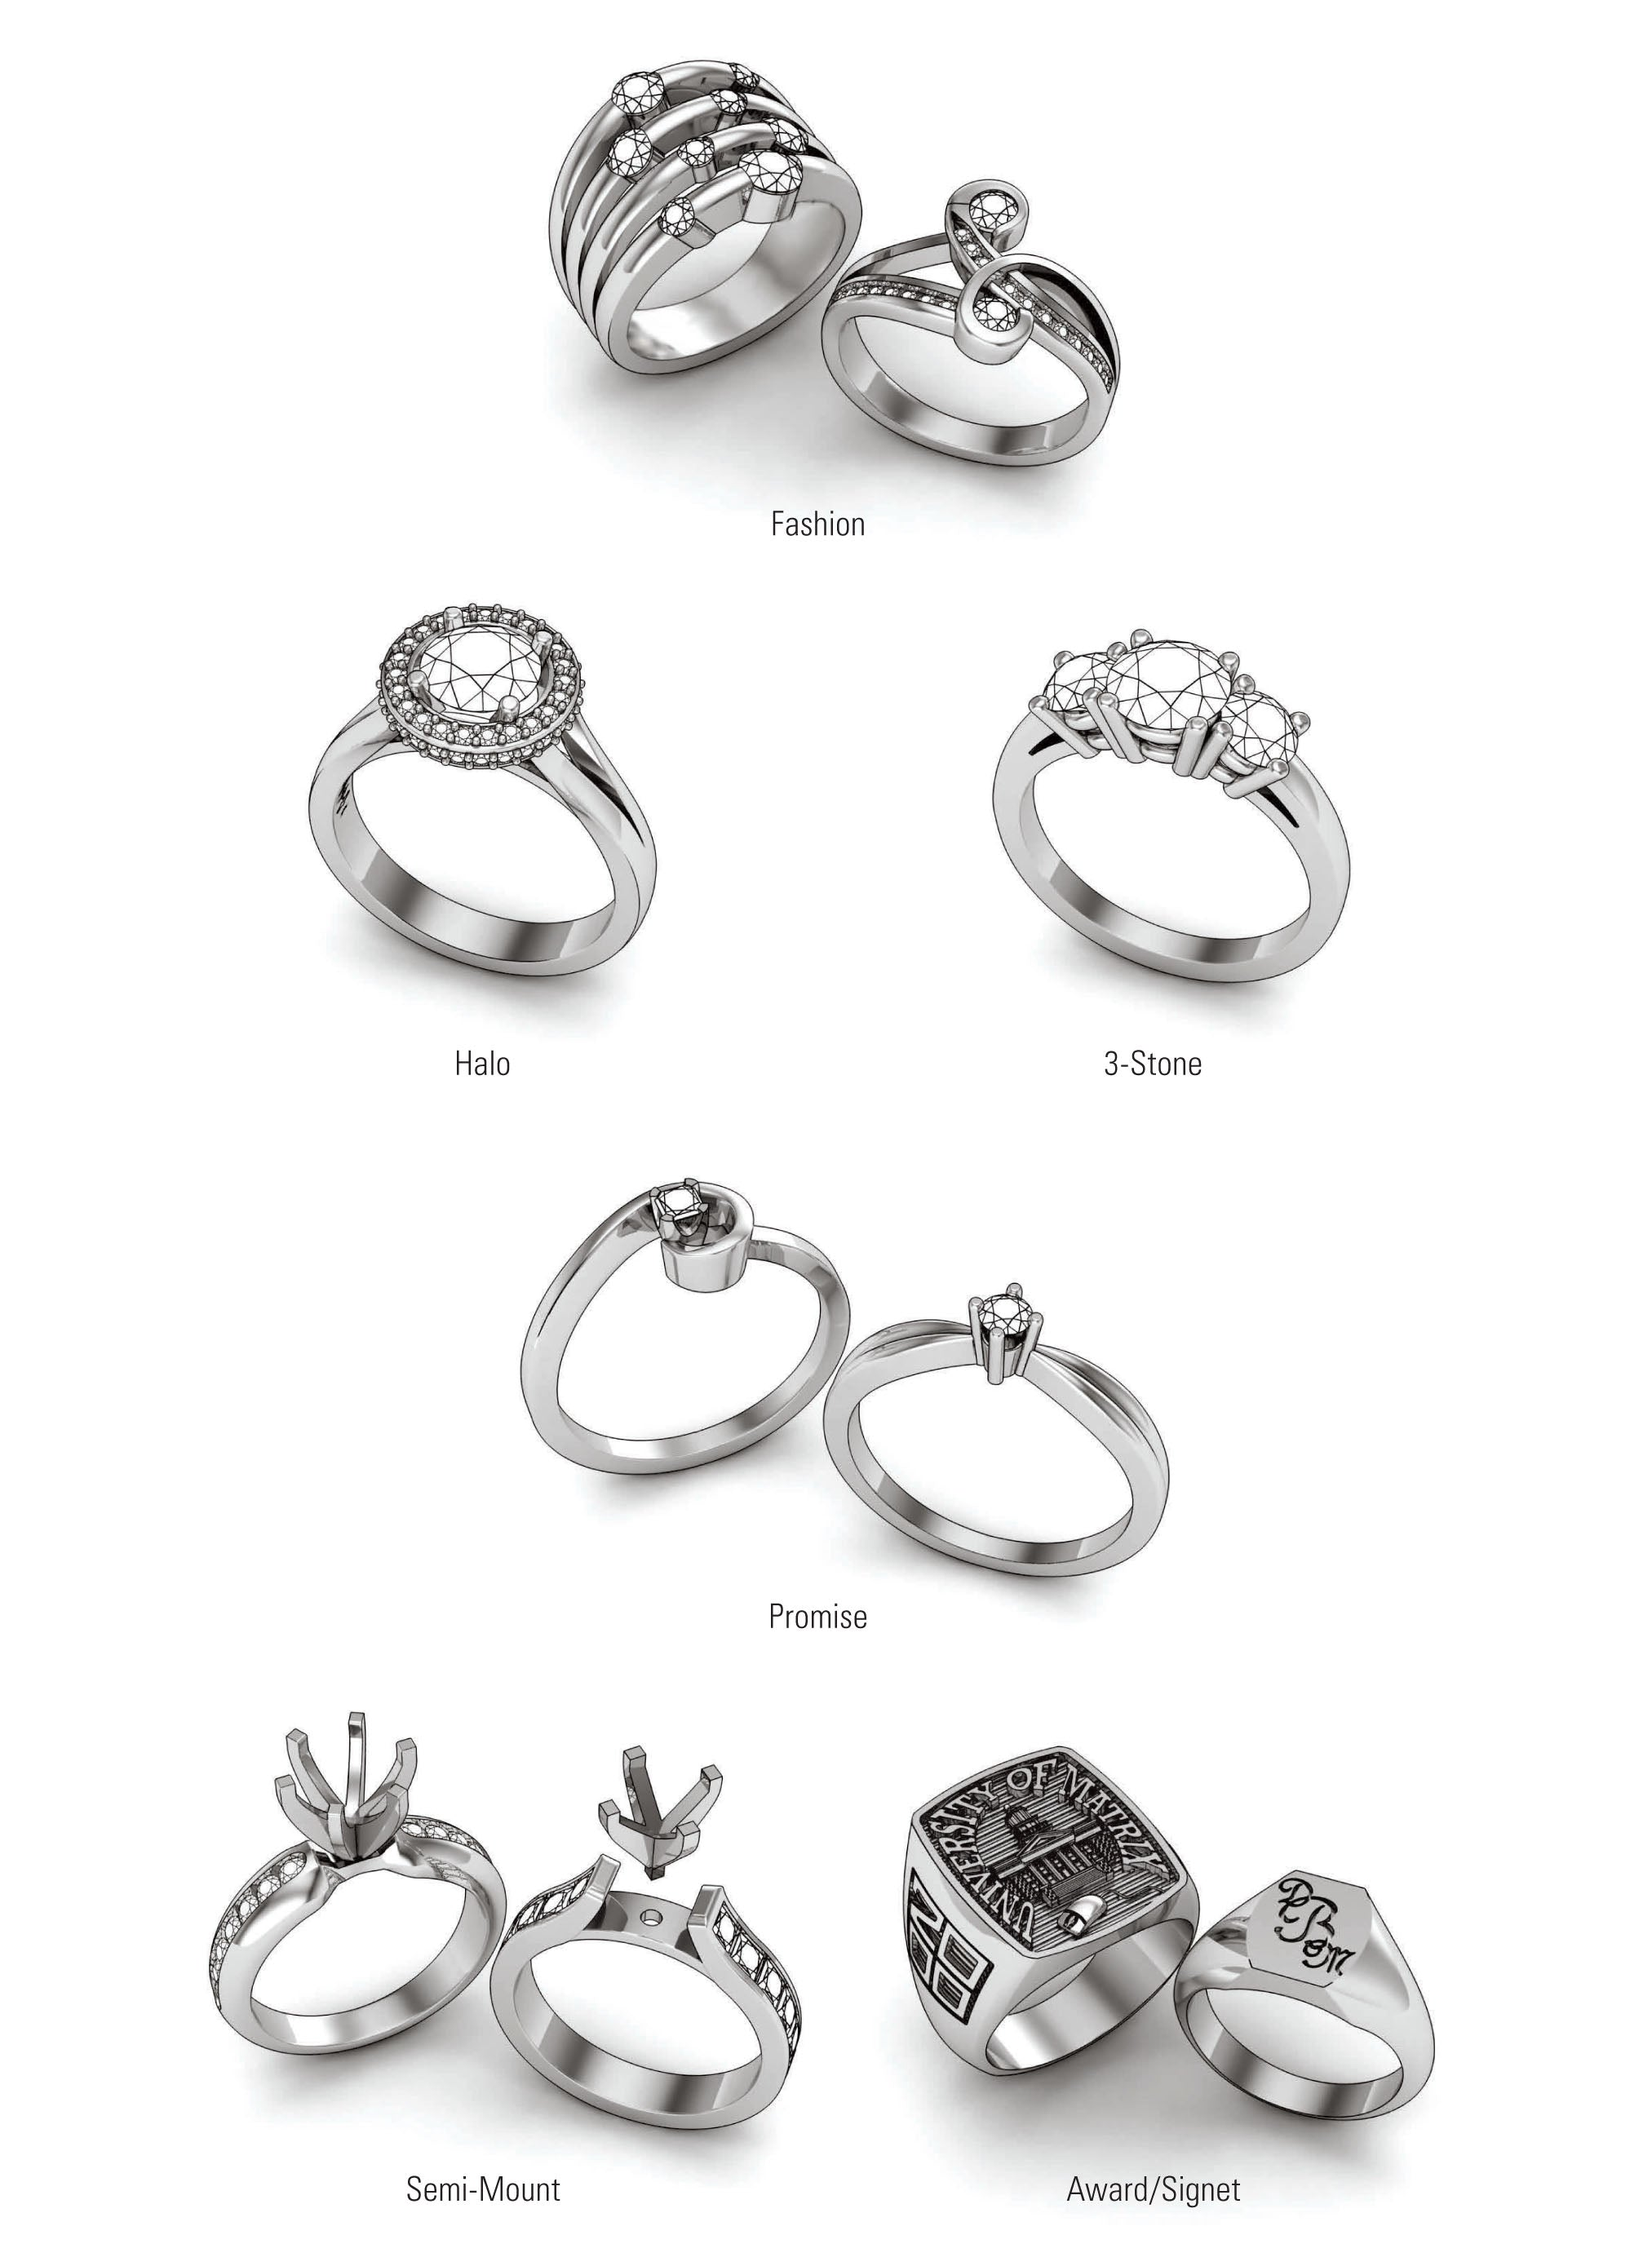 Types of rings, fashion rings, halo rings, 3-stone rings, promise rings, semi-mount rings, award rings and signet rings.